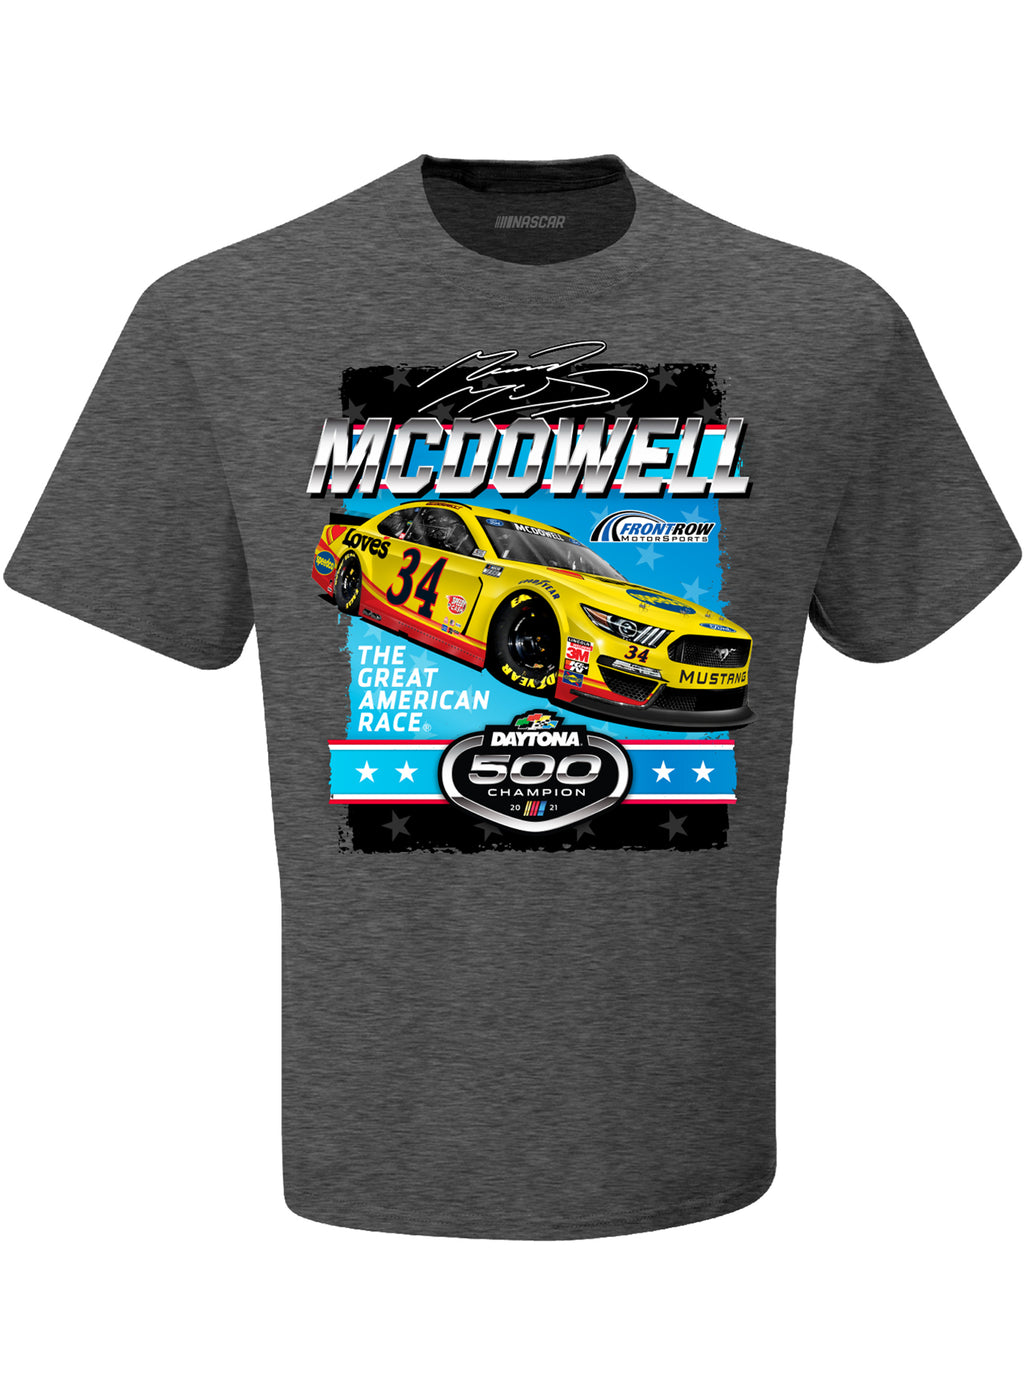 2021 DAYTONA 500 Michael McDowell Champion T-Shirt